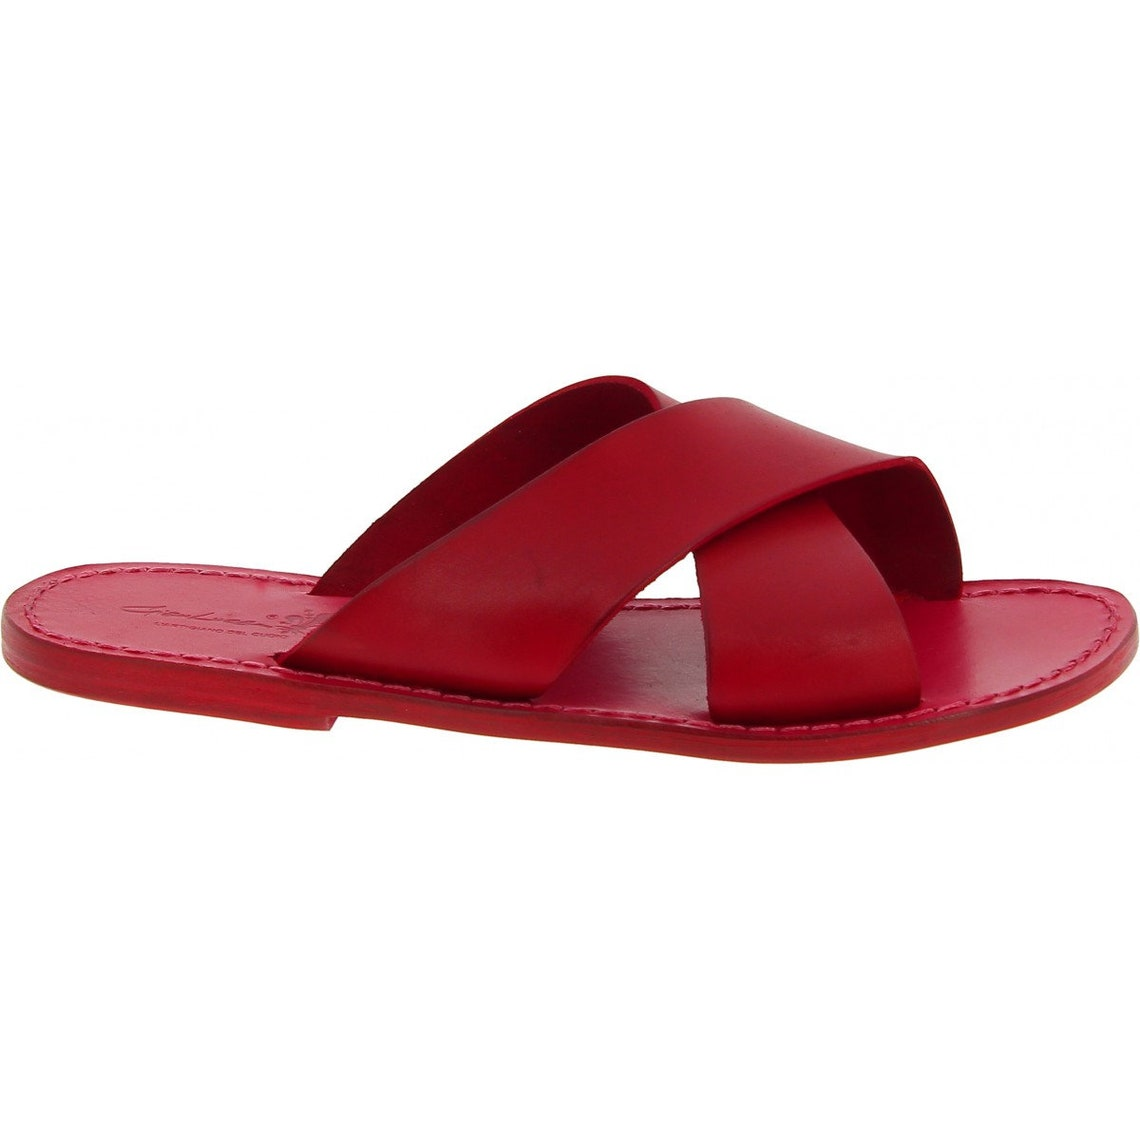 Men's leather slippers handmade in Italy in red leather |